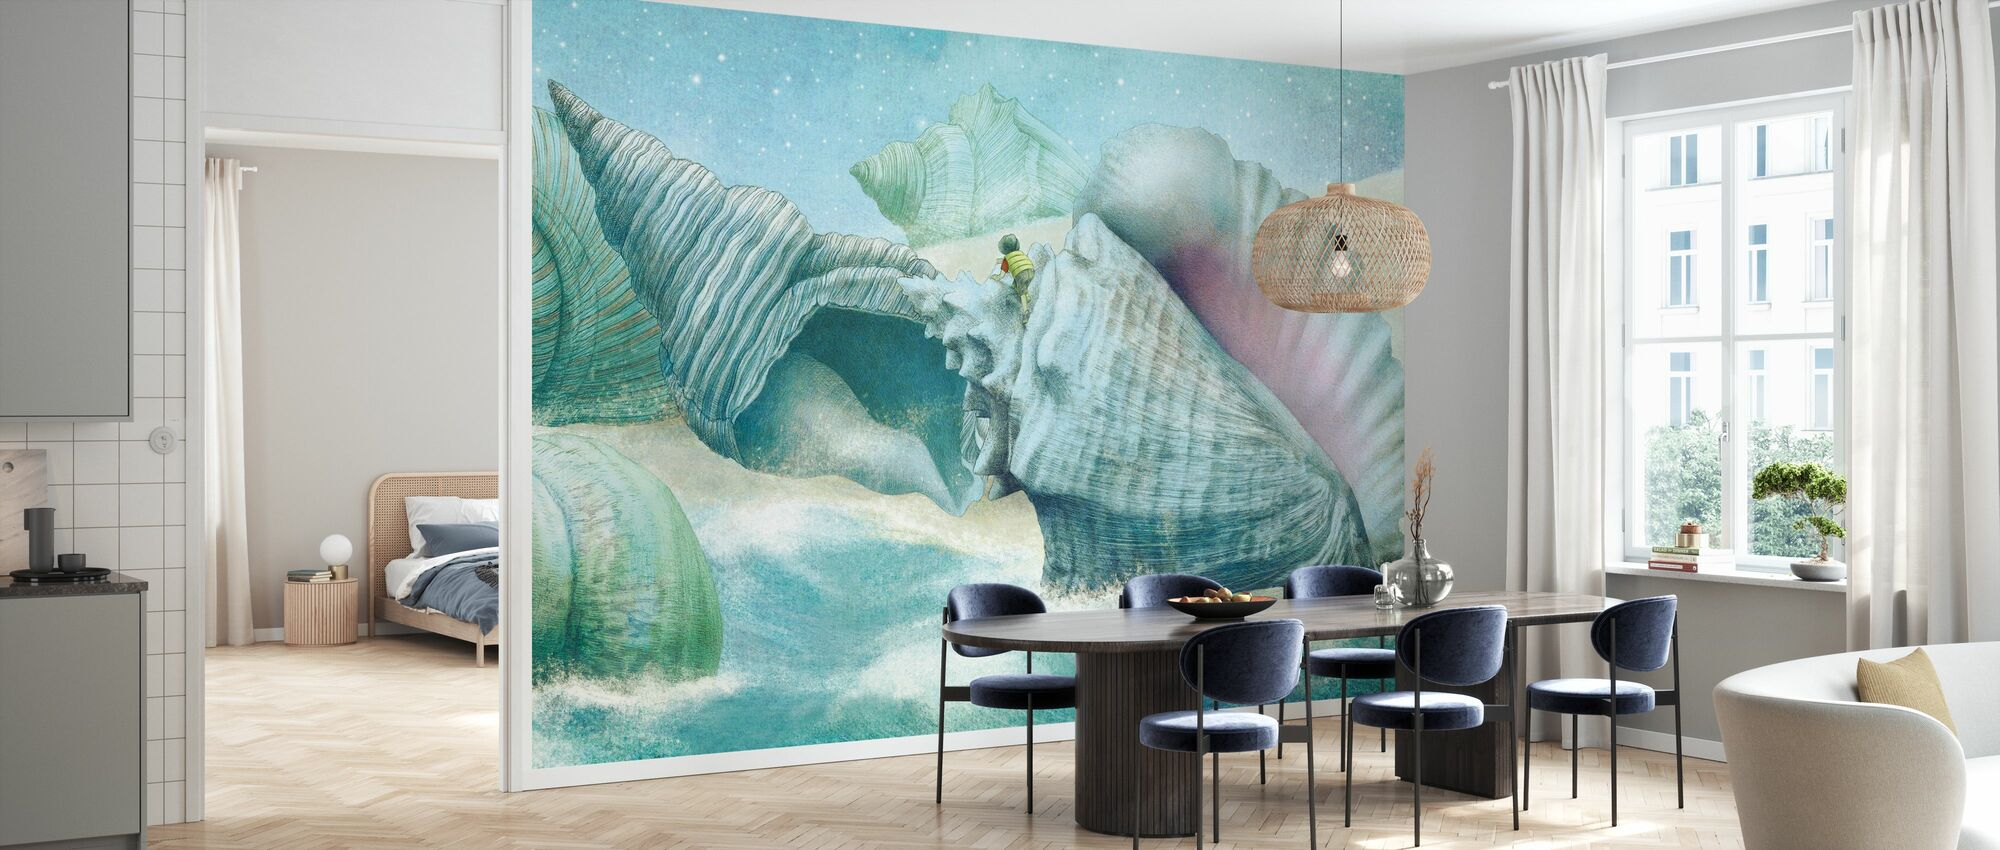 Ocean Meets Sky Shell Island - Wallpaper - Kitchen